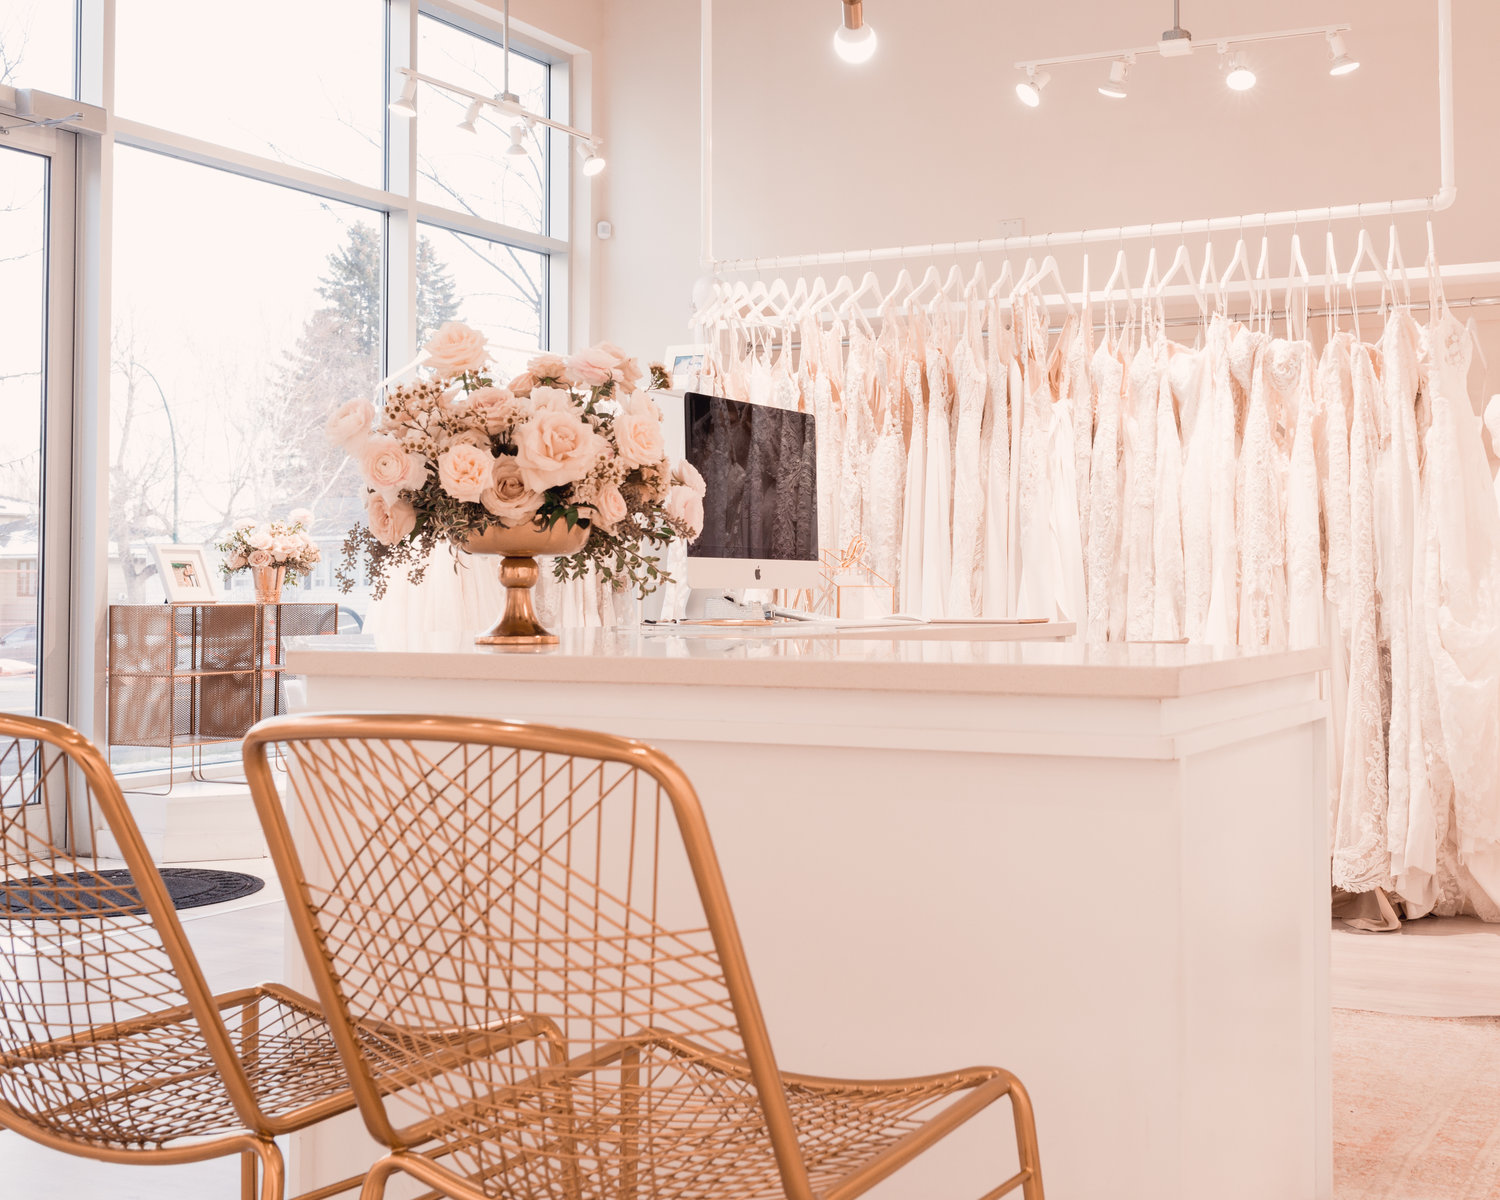 The Bridal Boutique in Calgary, Alberta